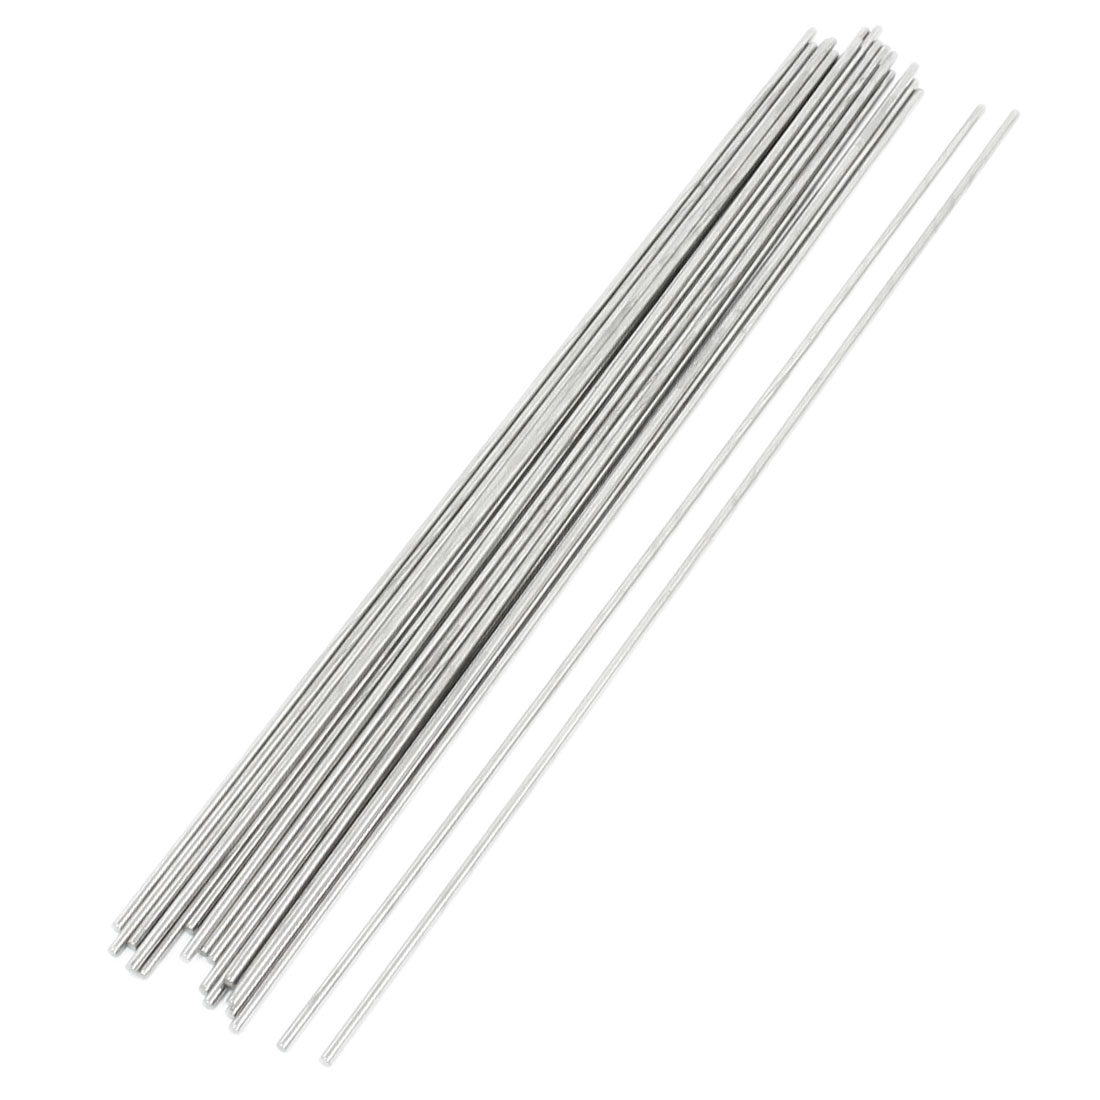 20pcs 300mm Long 2.5mm Dia Silver Tone Stainless Steel Round Rod Bar Shaft Axle for RC Helicopter DIY